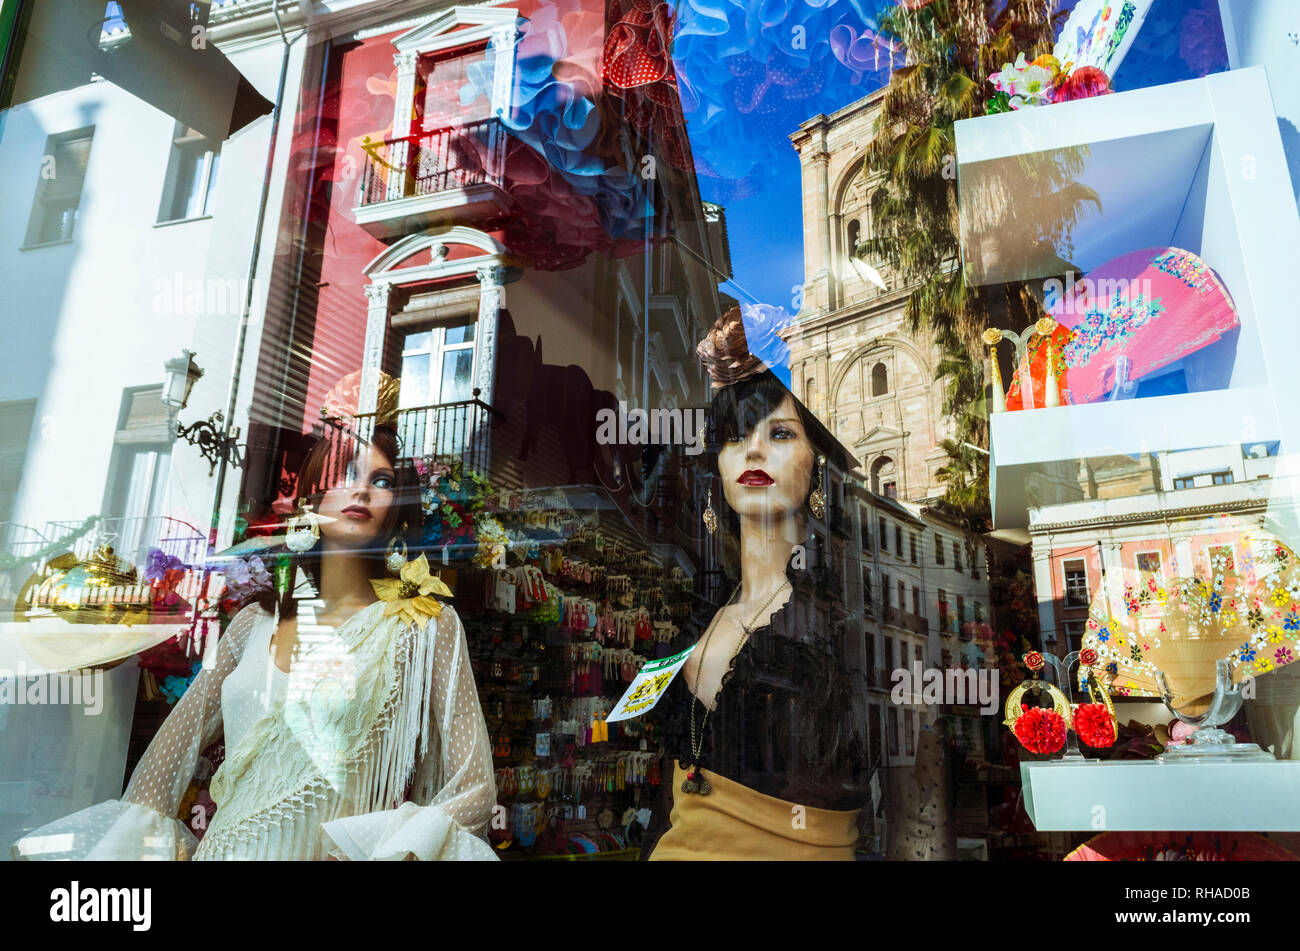 Granada, Andalusia, Spain : Window display with female mannequins in Rocio Flamenco fashion and reflections of the cathedral and Granada historic cent - Stock Image